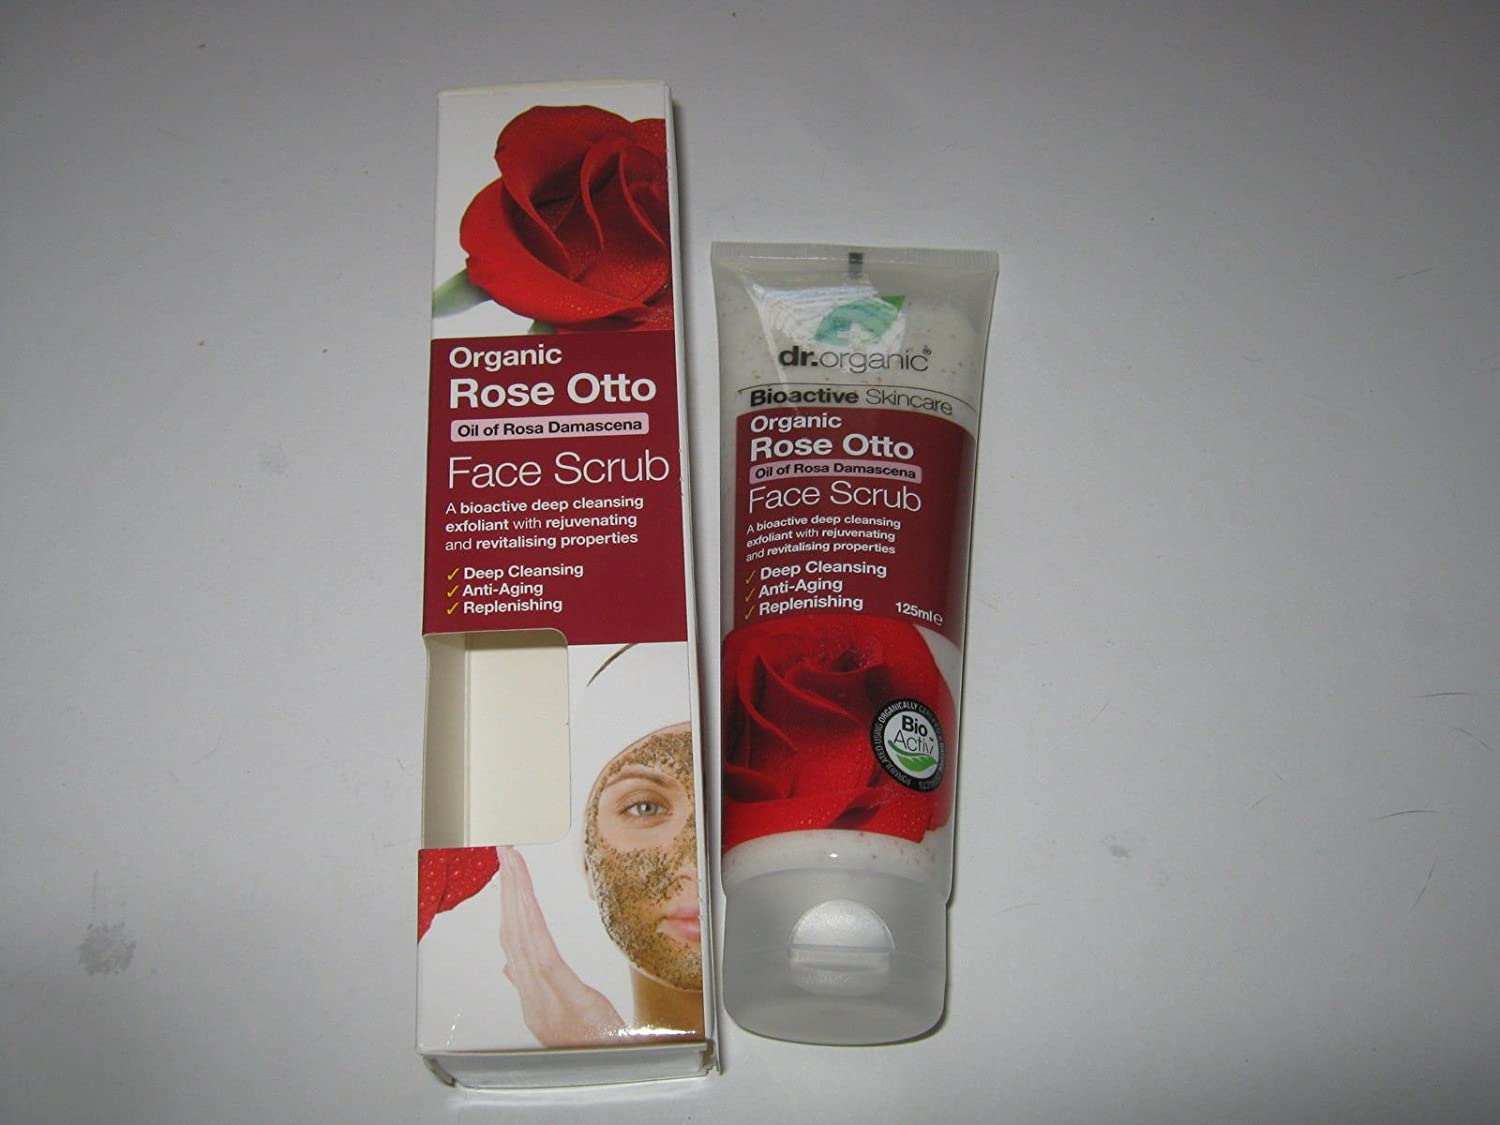 Dr Organic Rose Otto Face Scrub 125ml (Anti-aging, Deep Cleansing, Replenishing) Gift Fro You